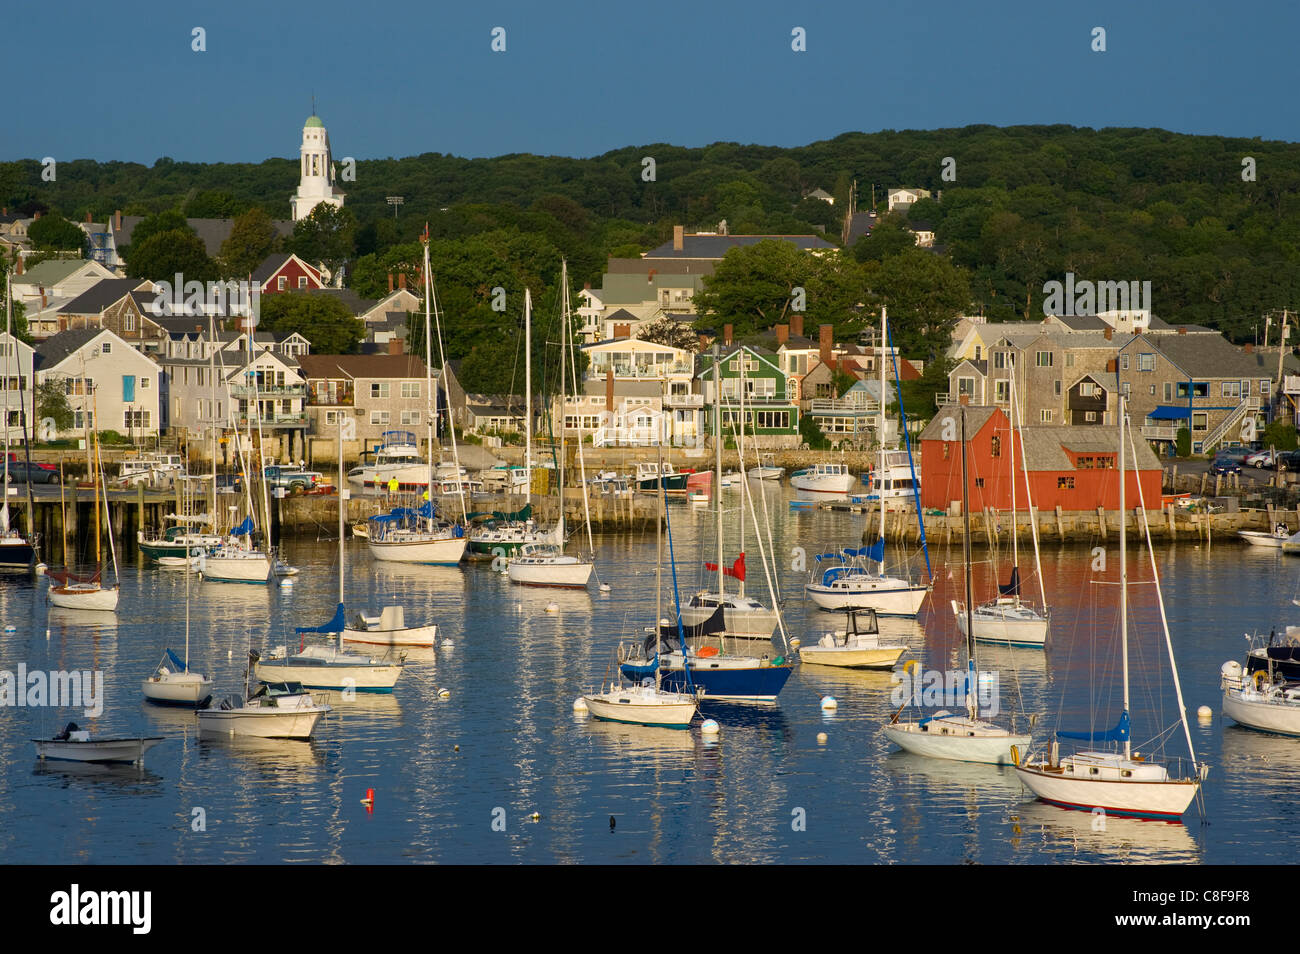 An early morning view of Rockport harbour, Rockport, Massachussetts, New England, United States of America - Stock Image